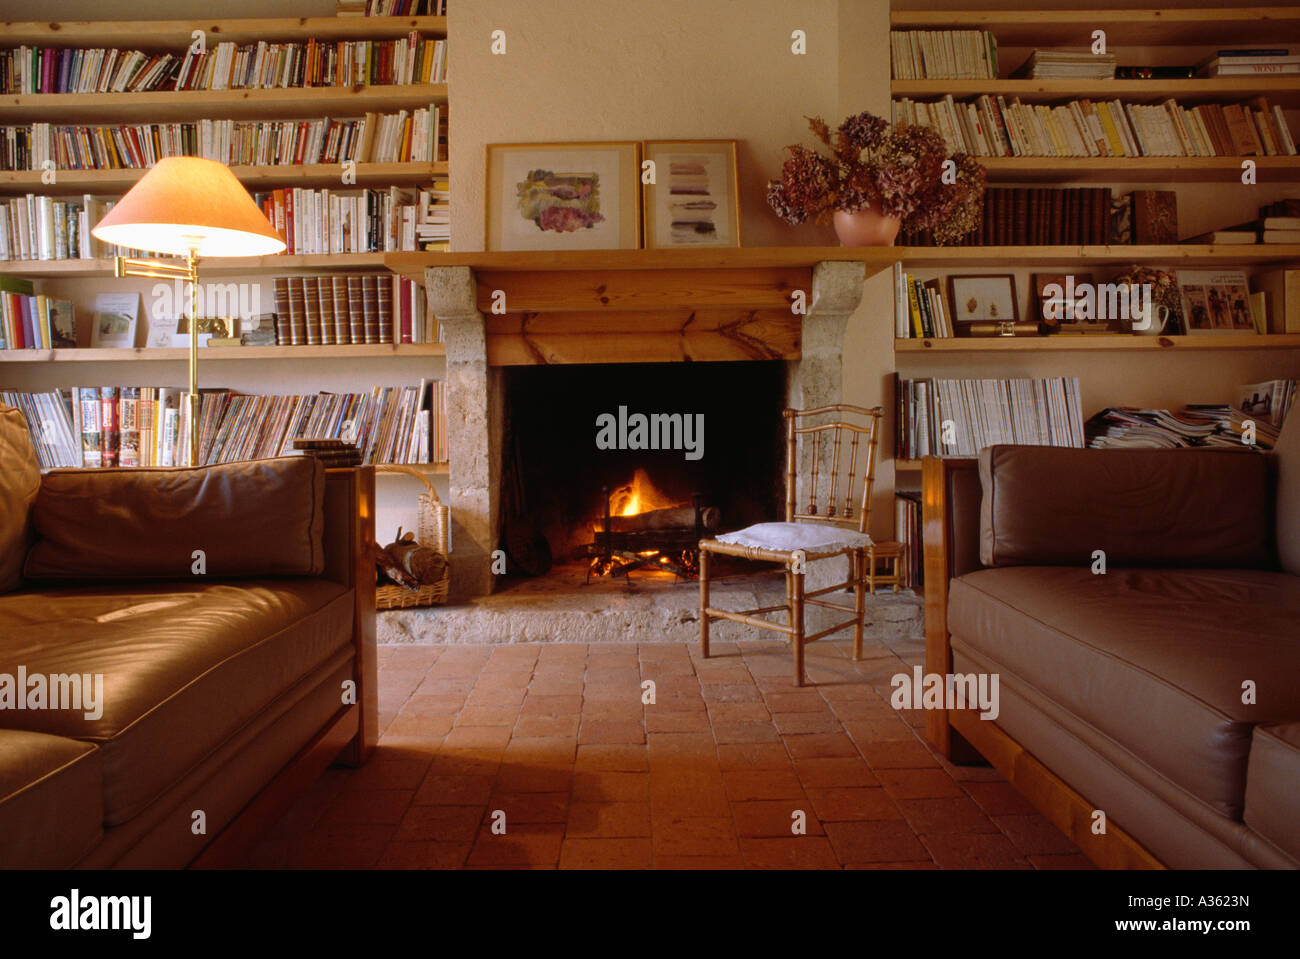 bookshelves on either side of fireplace in country sittingroom